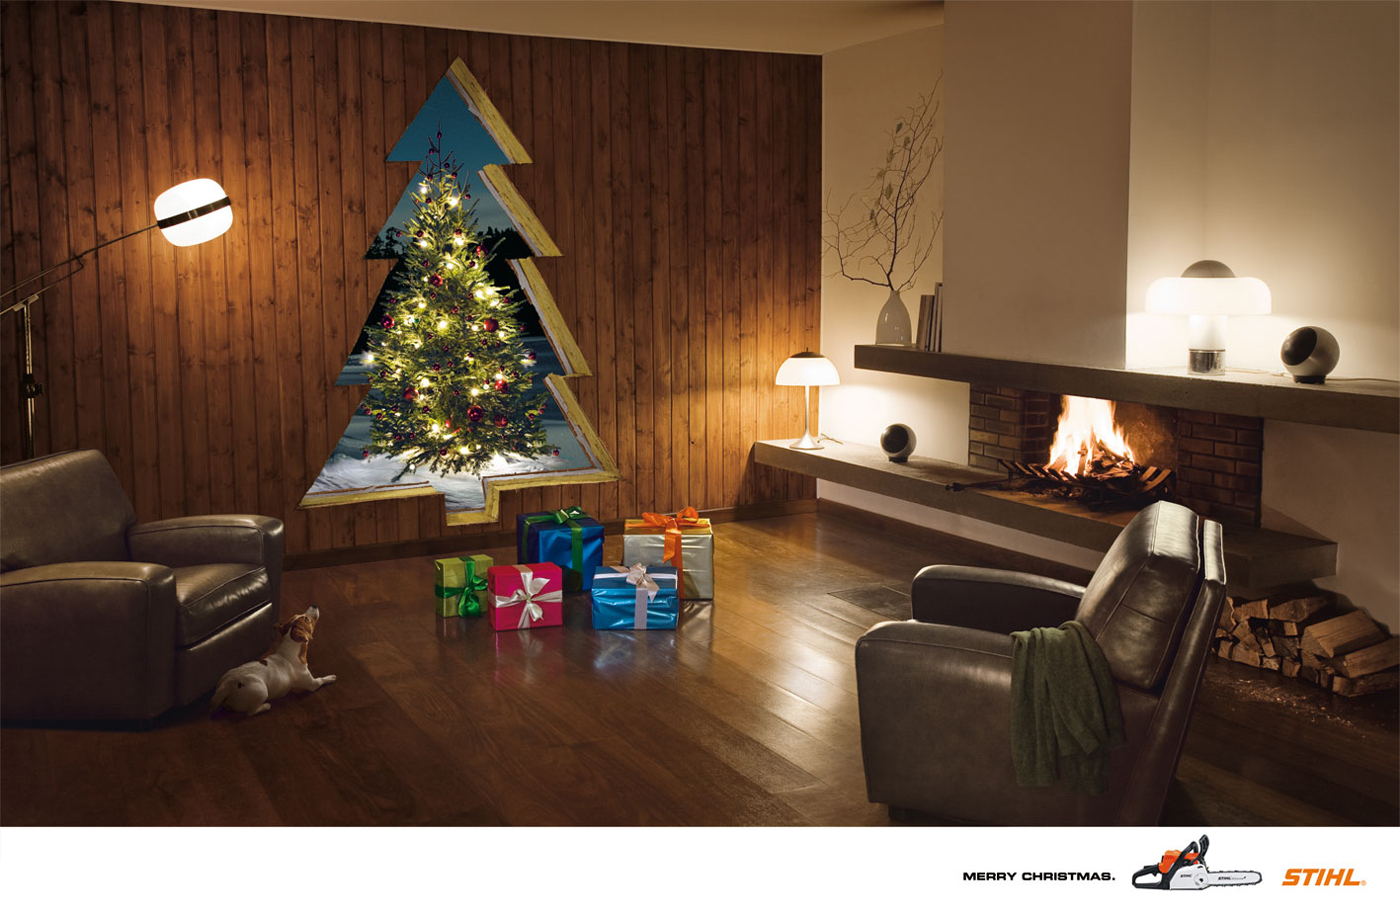 Xmas interior design   home design